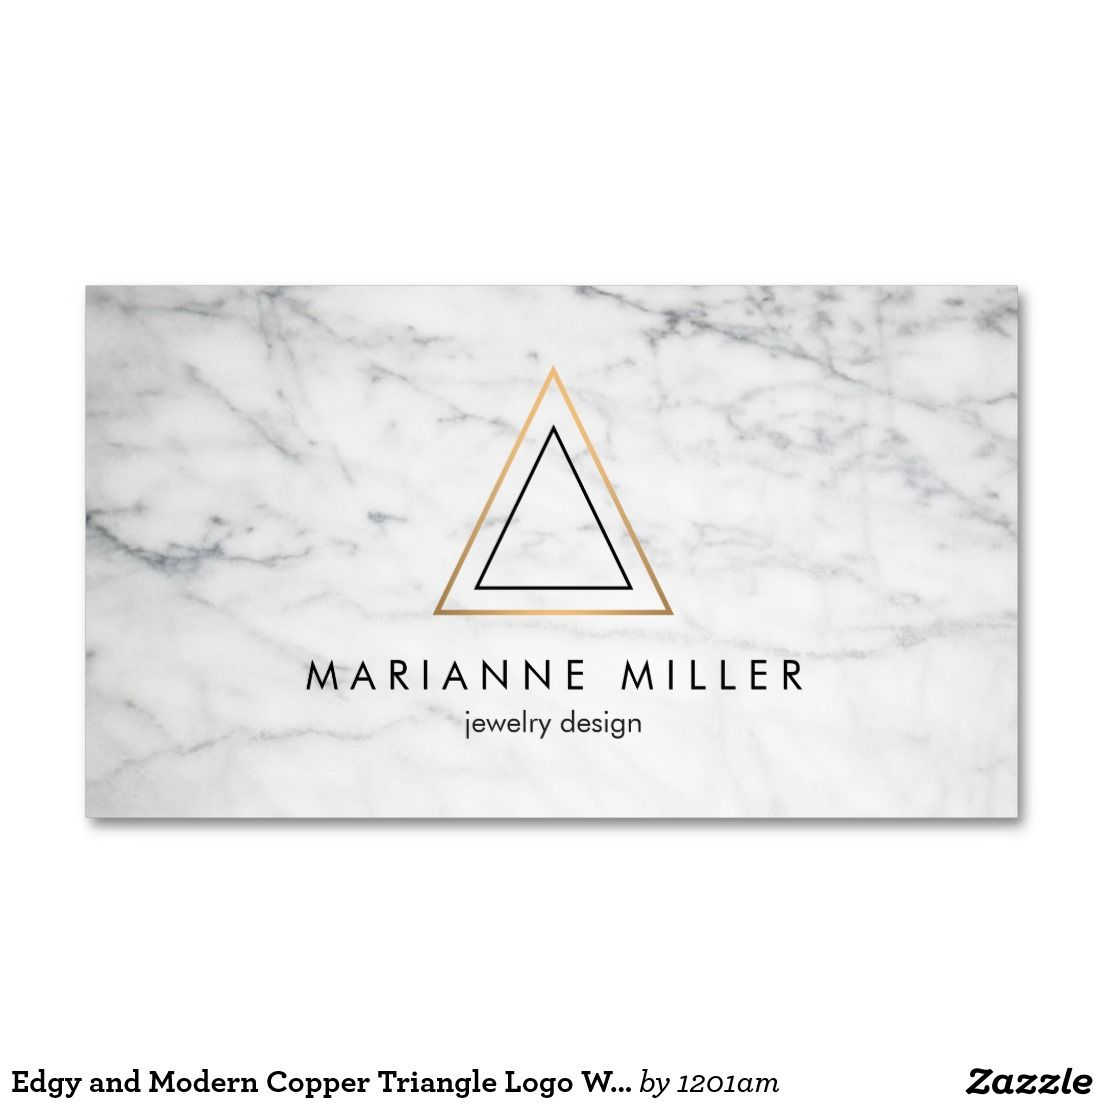 Edgy and Modern Copper Triangle on White Marble Business Card Template - Sleek and modern design for jewelry designers, architects, interior designers, boutiques and more.